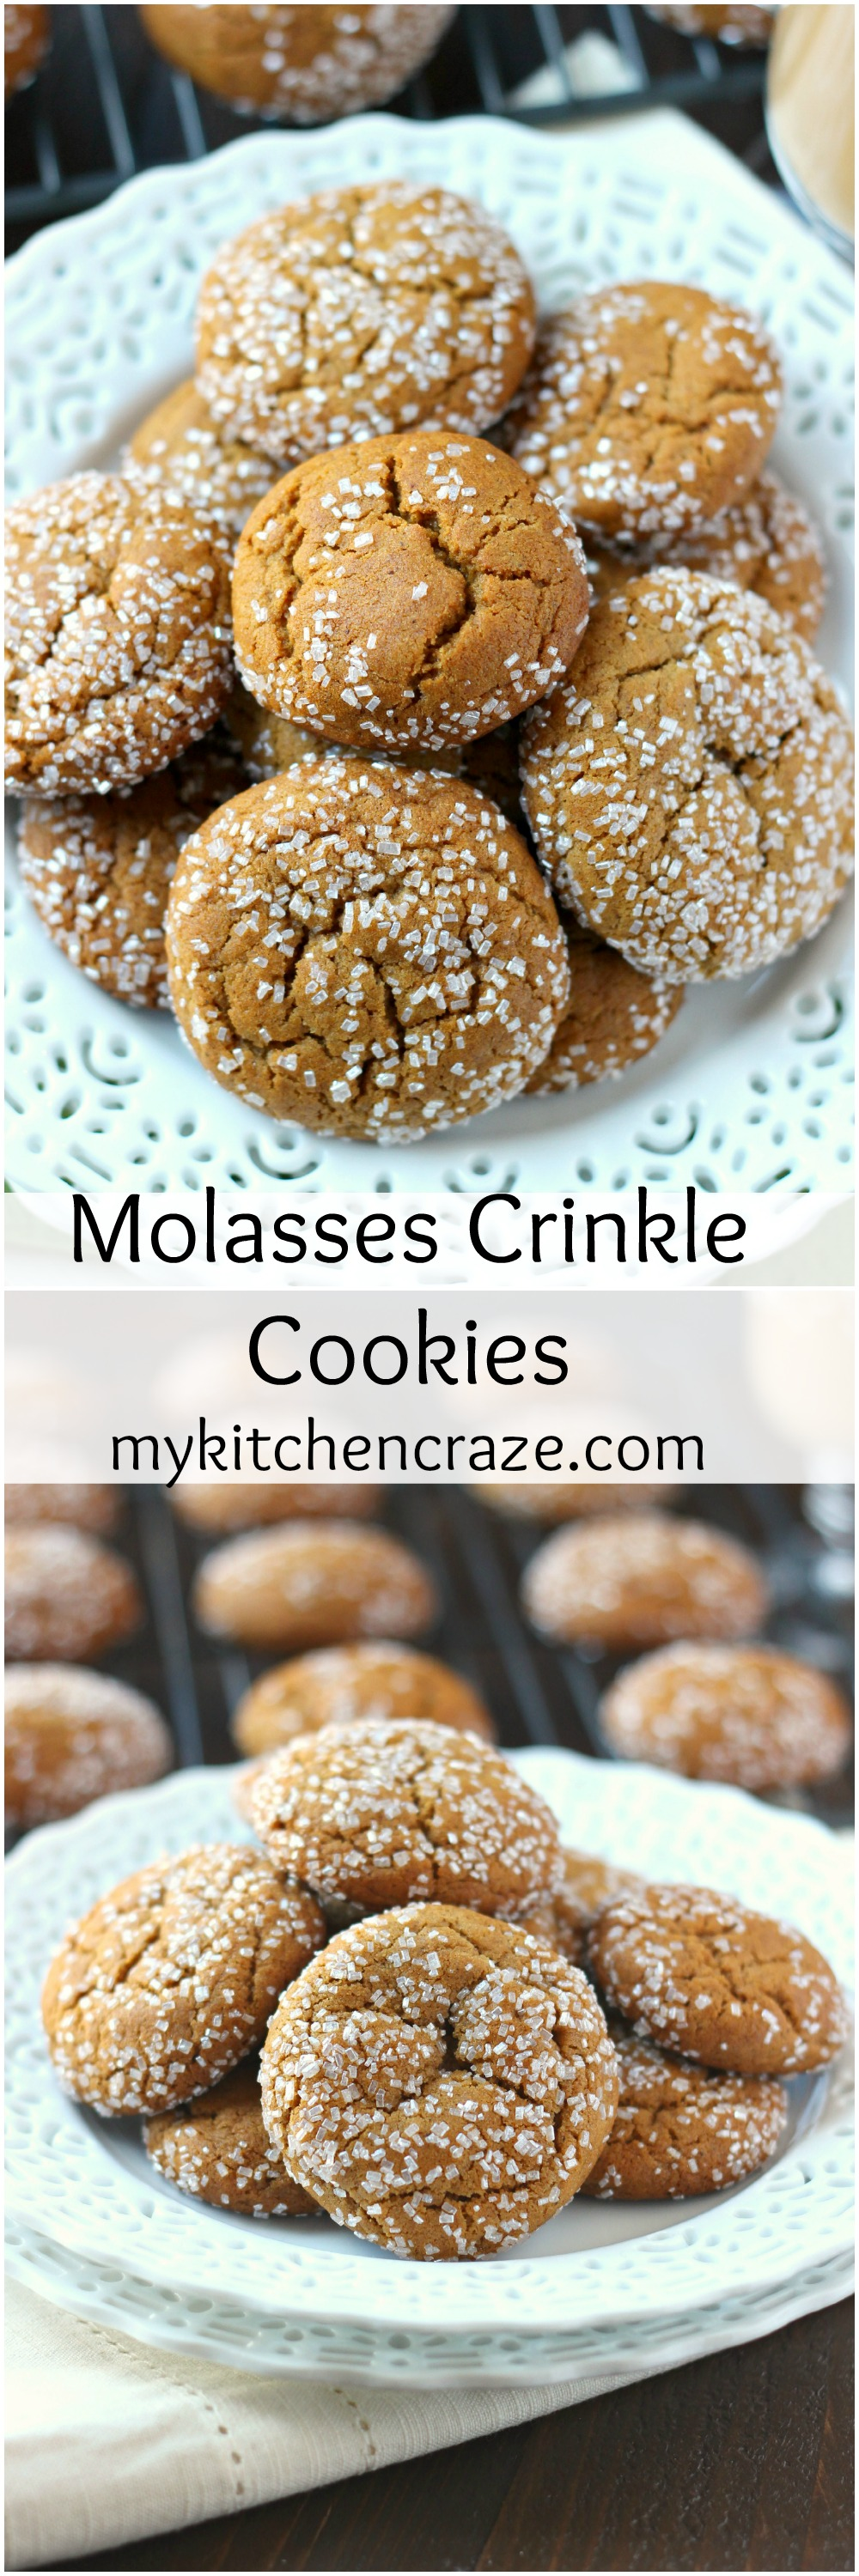 Molasses Crinkle Cookies ~ mykitchencraze.com ~ A delicious, soft chewy molasses crinkle cookie. Loaded with cinnamon, ginger and cloves. These cookies will be a hit!